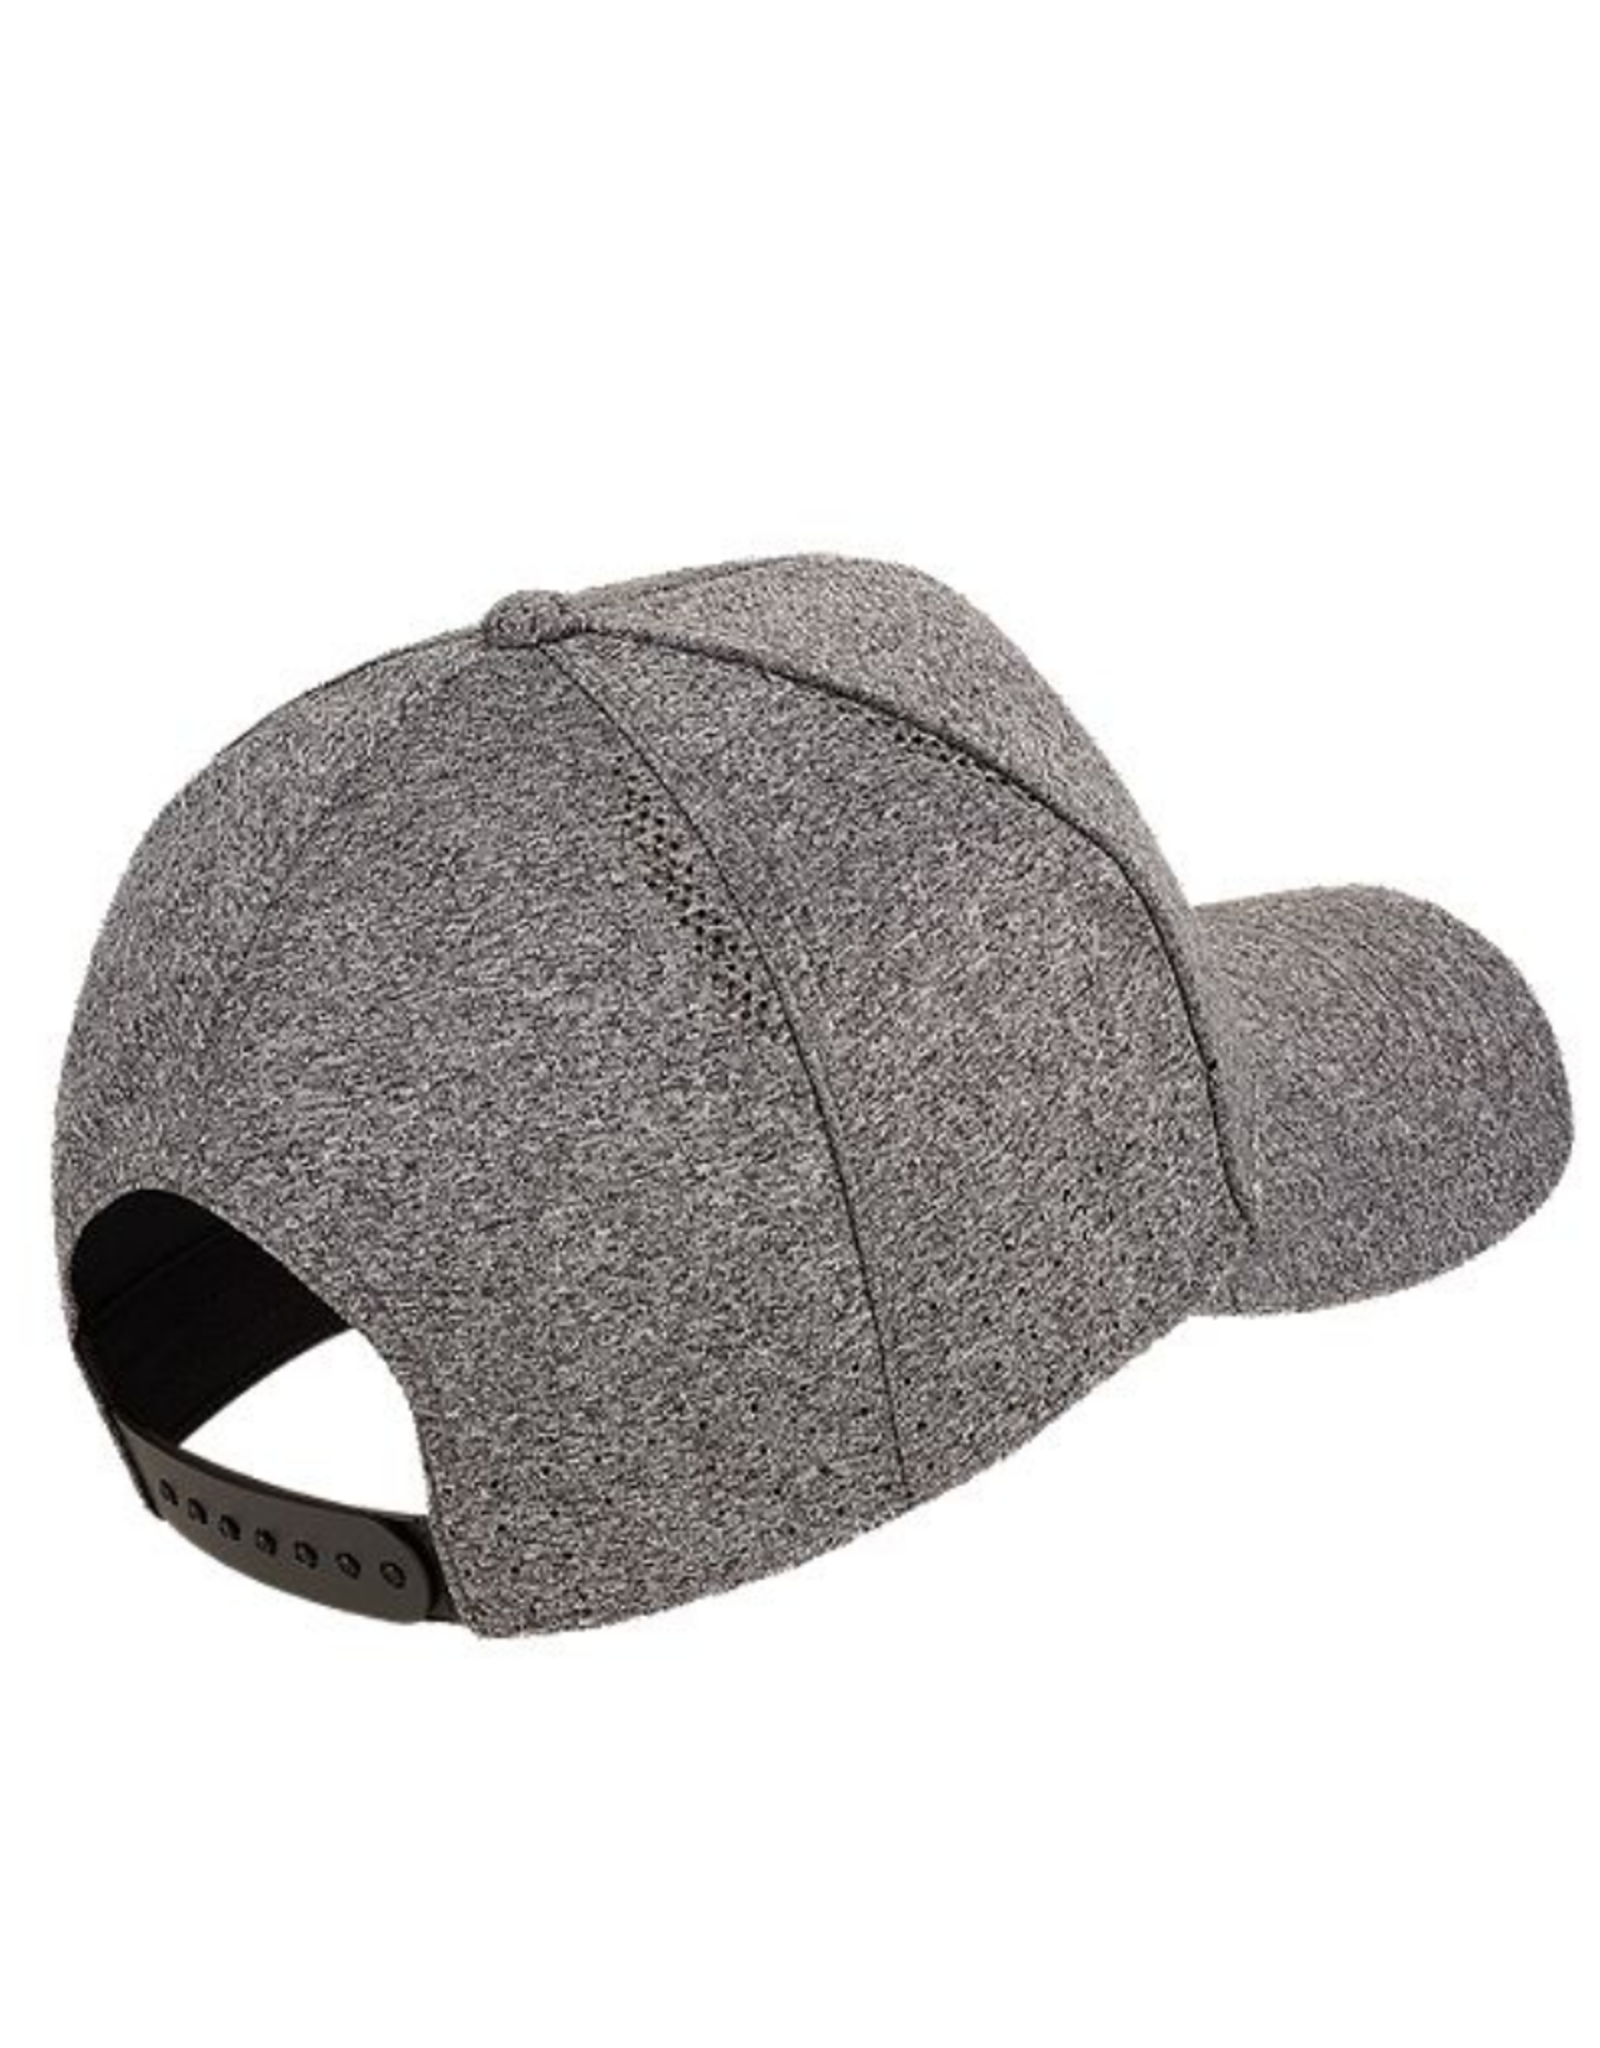 Nike Men's Aerobill Classic 99 Perforated Adjustable Hat Grey